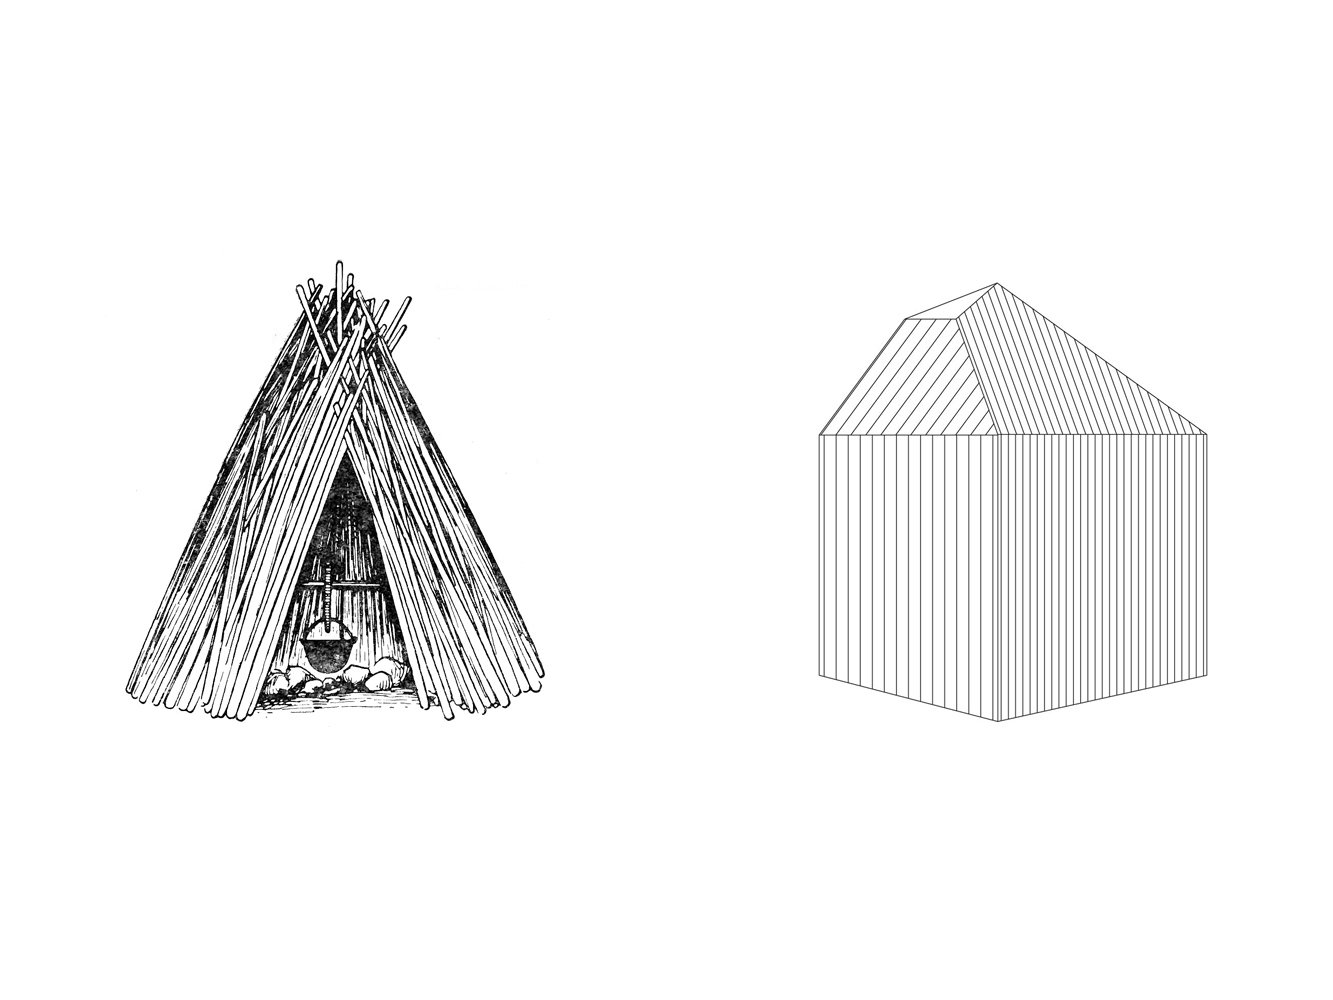 An ancient Estonian wigwam-like cabin informs the design of the forest retreat.